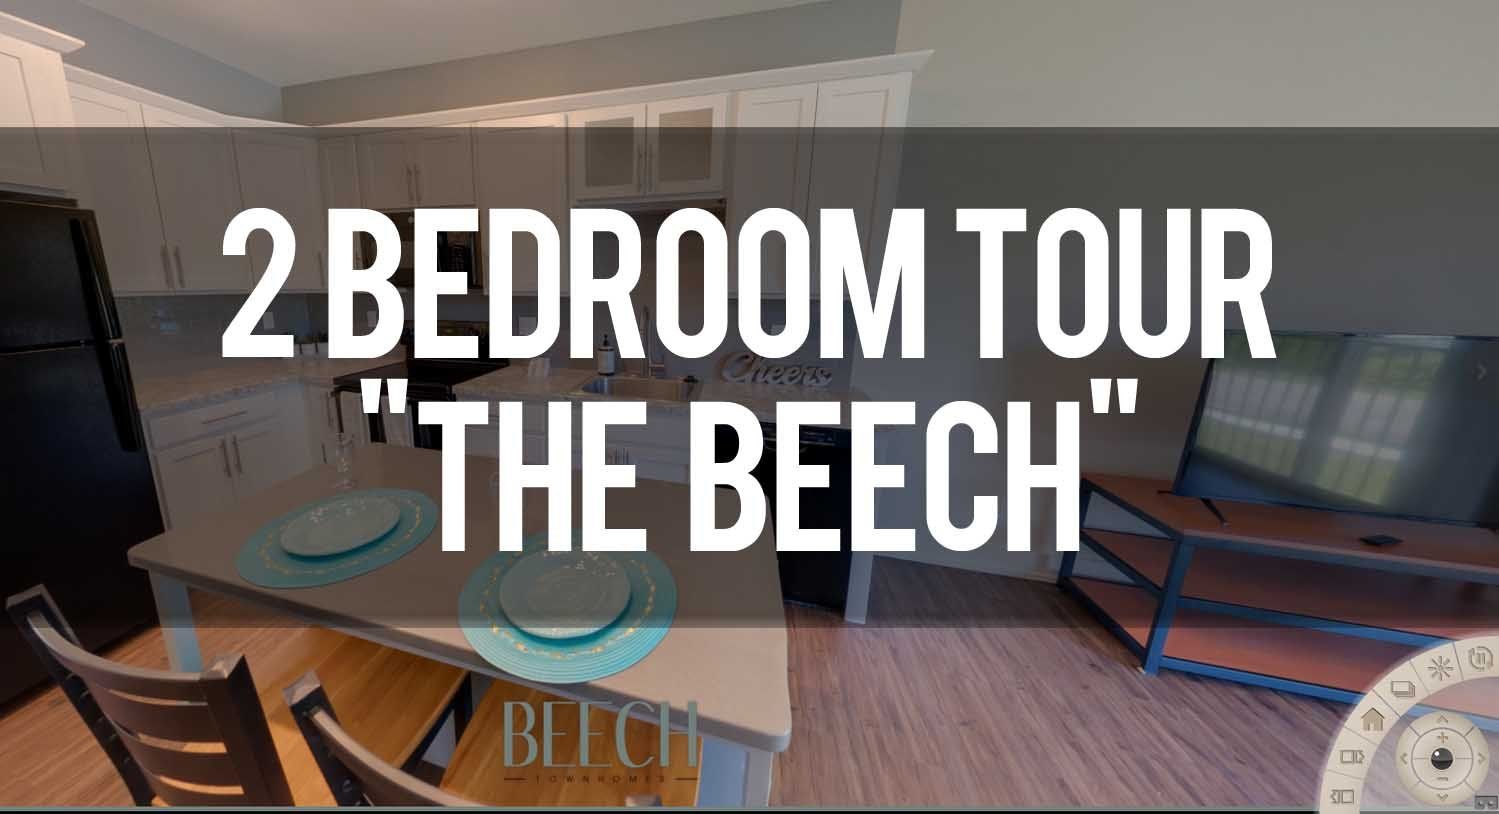 Virtual Tour of 2 Bedroom at Beech Townhomes